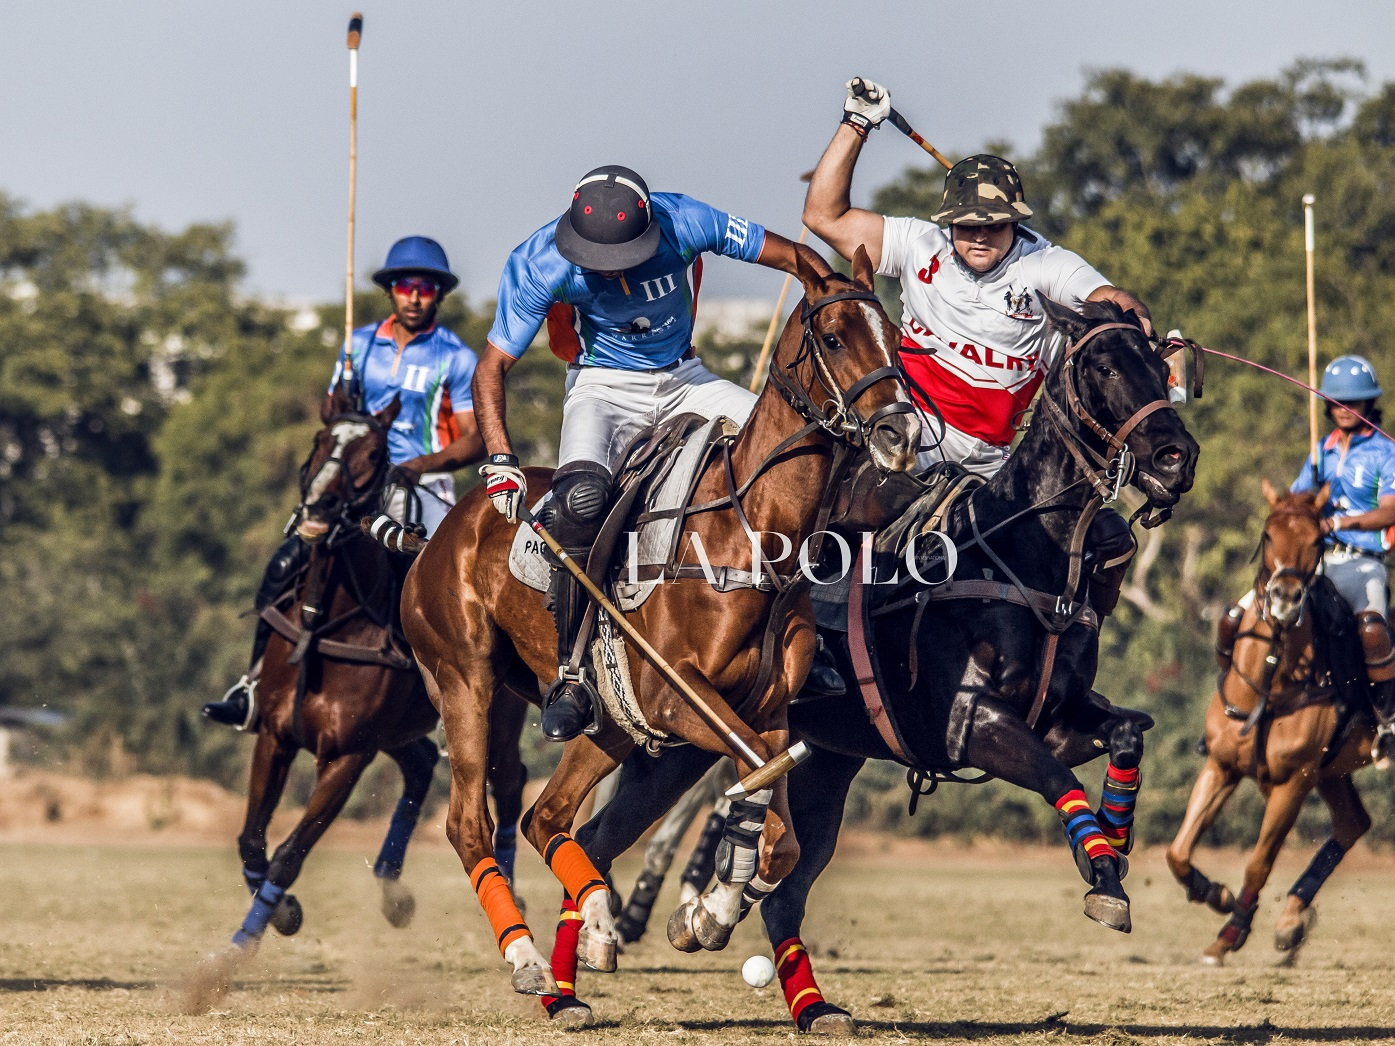 61 Cavalry and Sahara Warriors in the final battle of the Princess Diya Kumari Cup